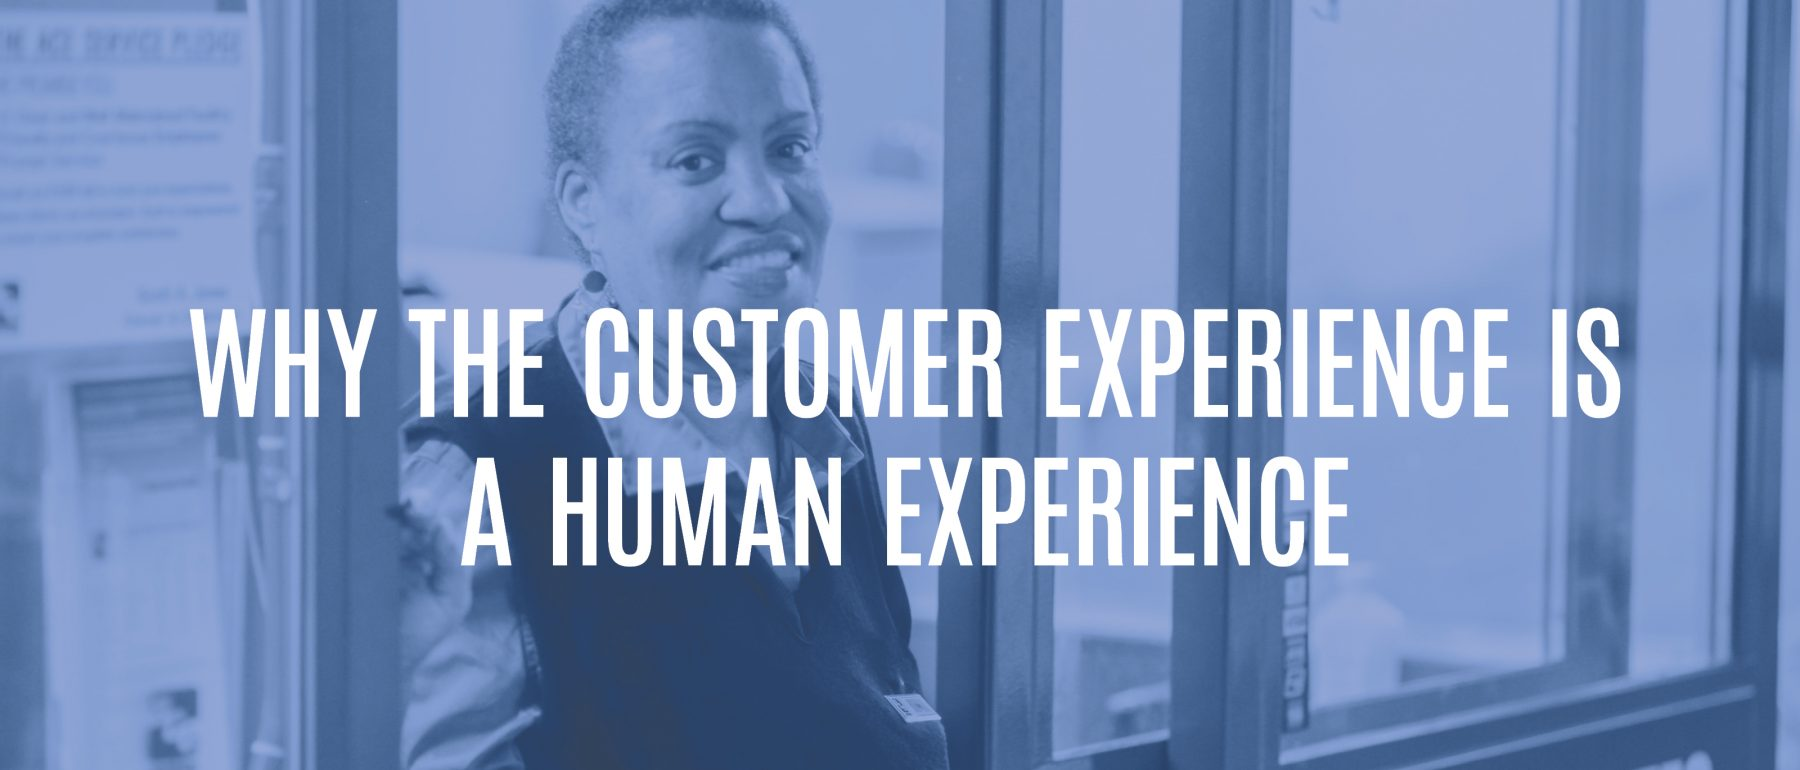 Blog Title - Why Customer Experience is a Human Experience